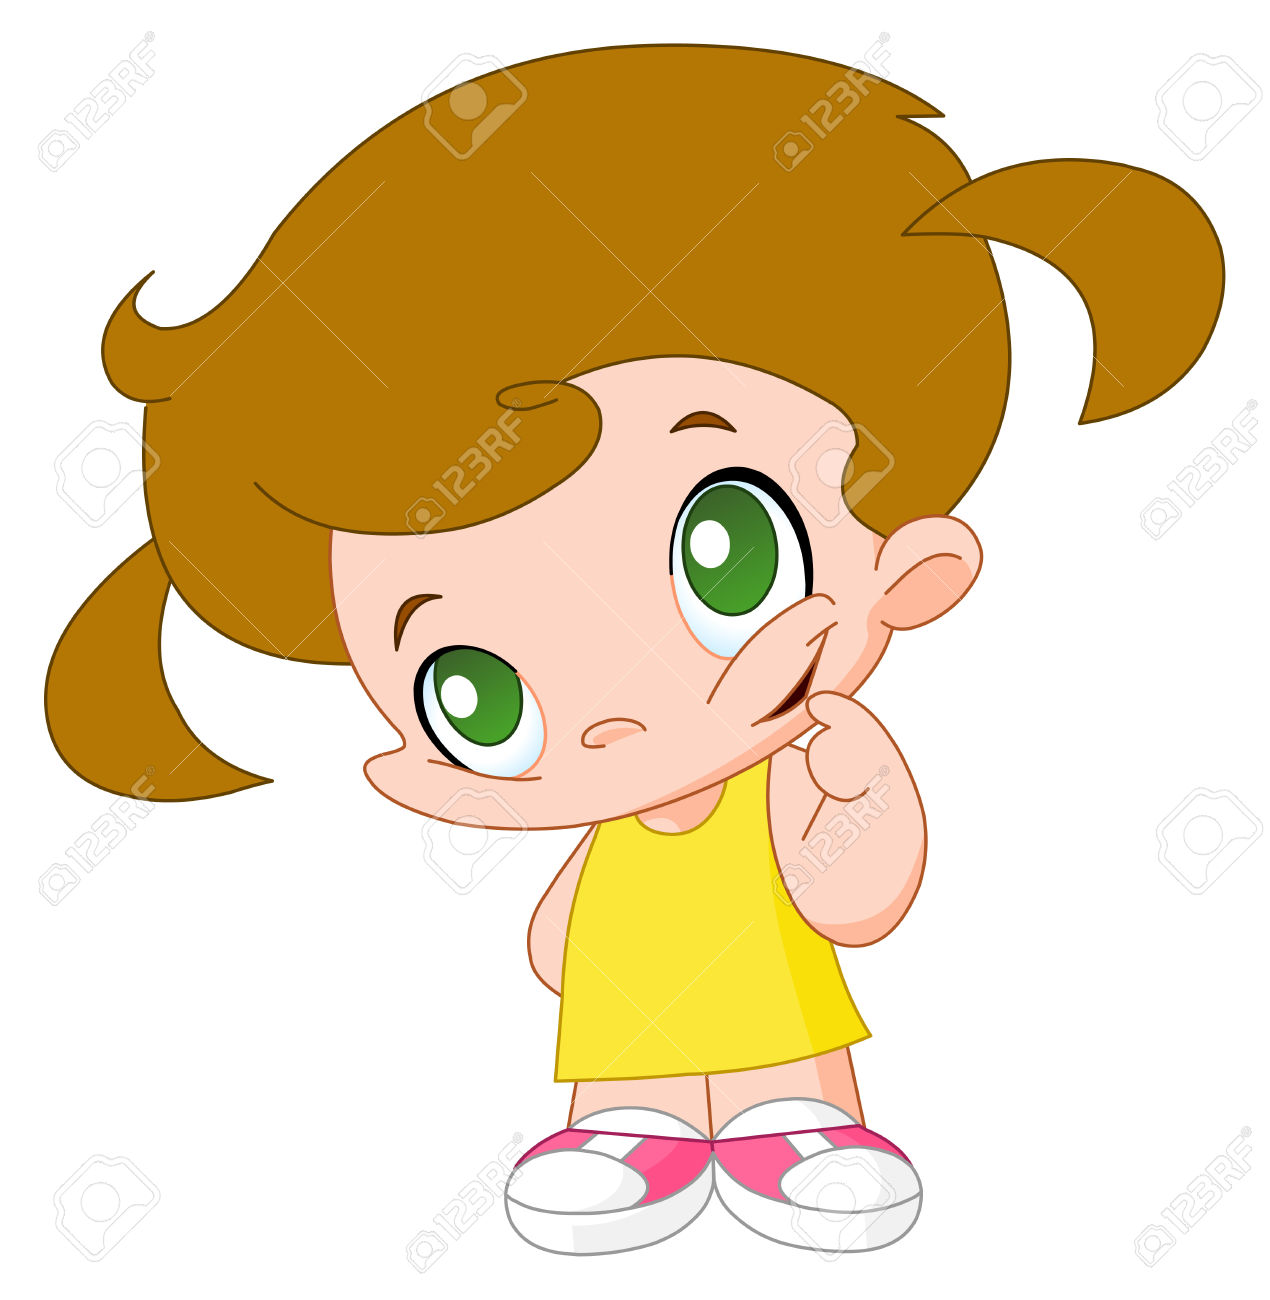 Cute Little Girl Cartoon Images Clipart | Free download on ...